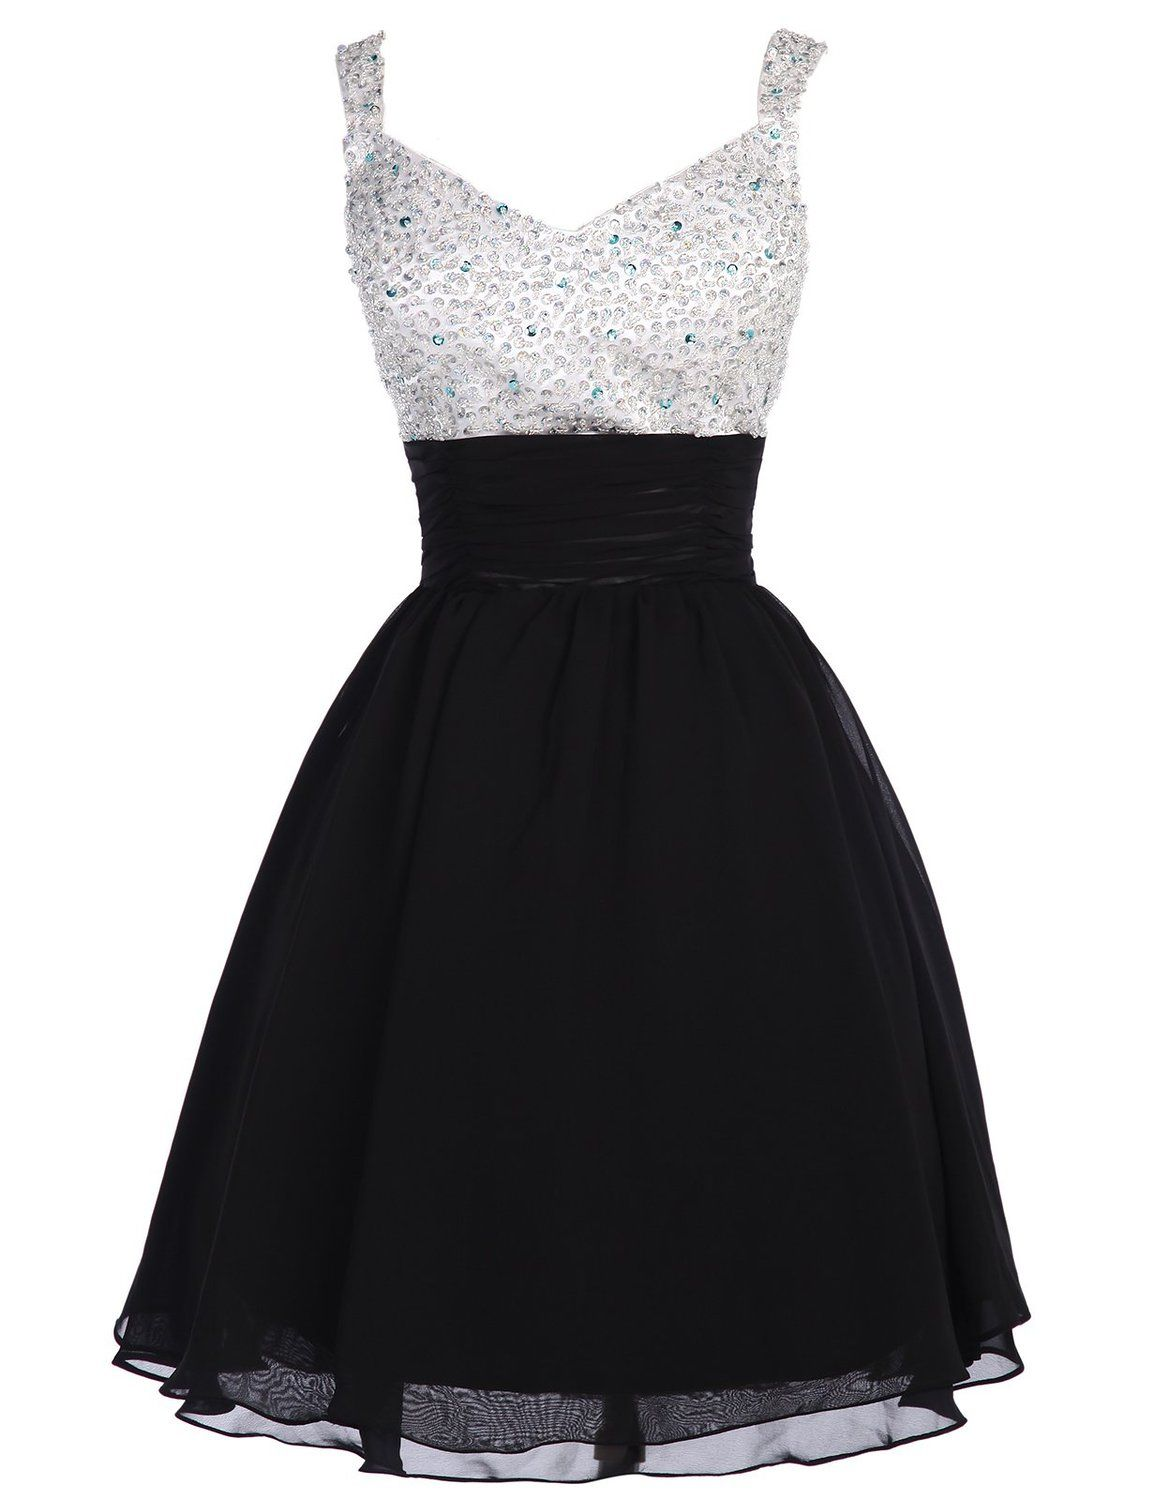 Tidetell.com Cute A-line V-neck Chiffon Beaded Homecoming Dress with Straps, short prom dresses, black prom dresses, chiffon prom dresses, beaded prom dresses, cute homecoming dresses, beaded homecoming dresses, V-neck homecoming dresses